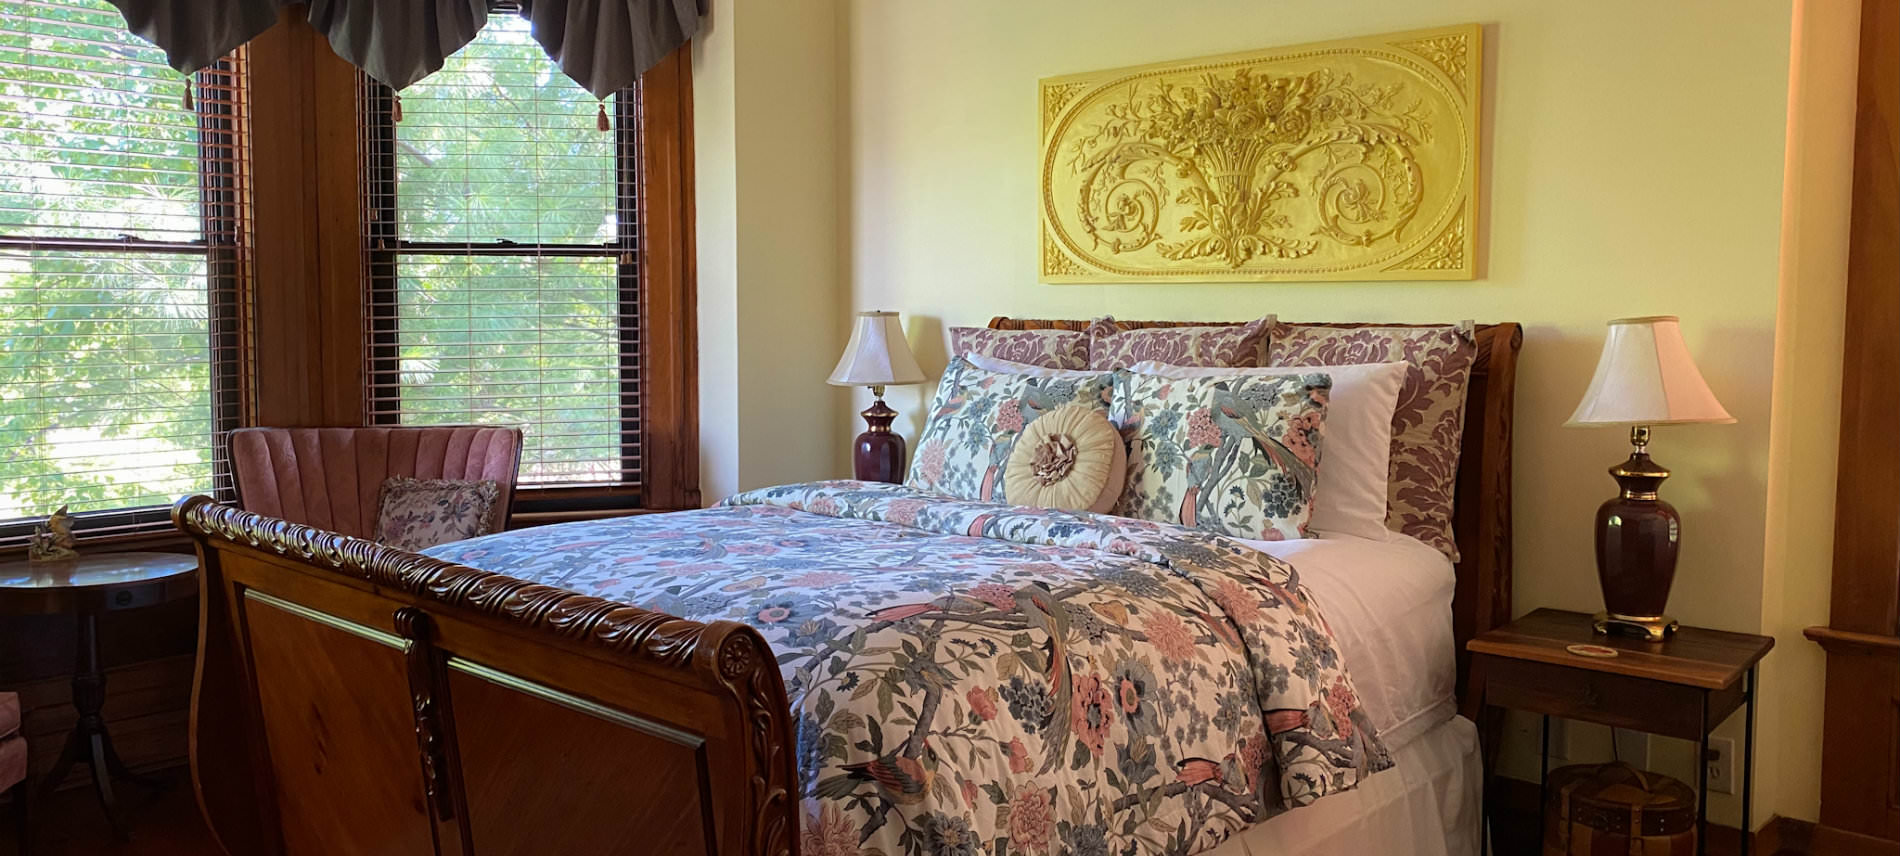 Botanical Garden room with floral bedspread, sitting area in front of bay windows